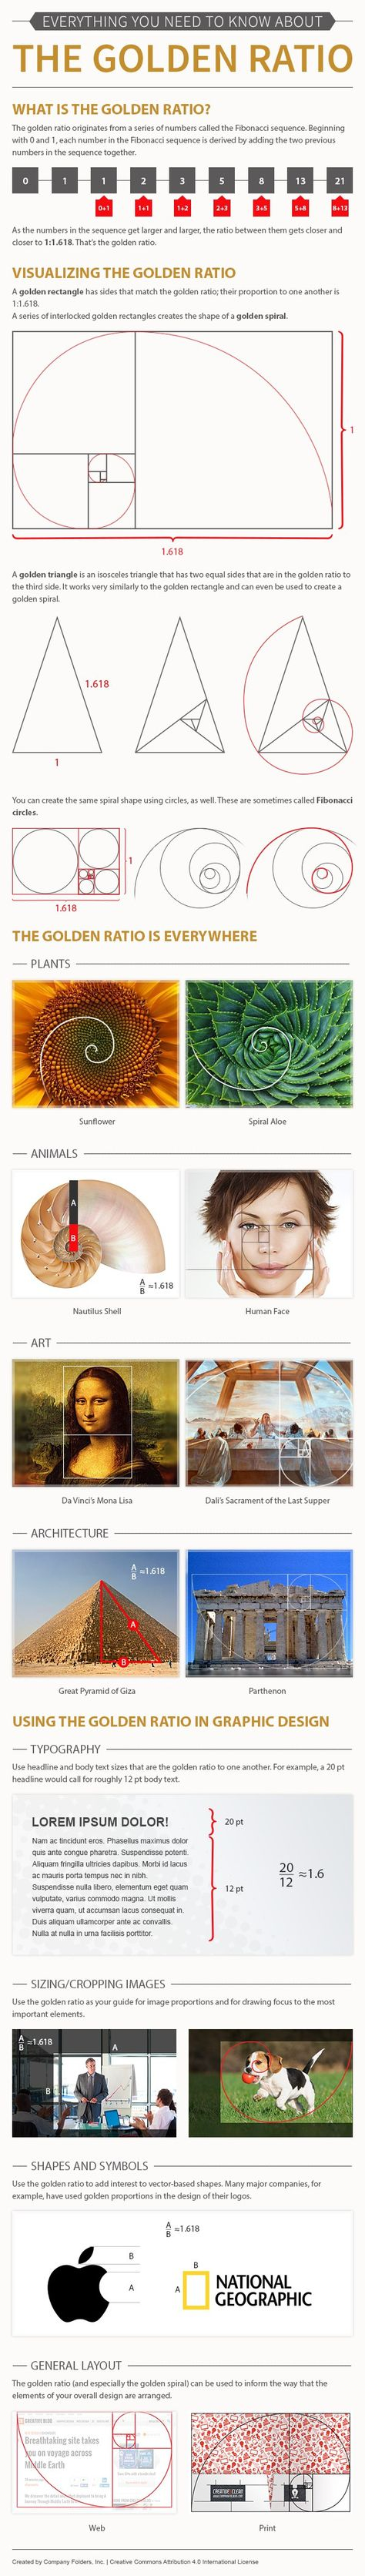 How to Apply the Golden Ratio in Photography and Design